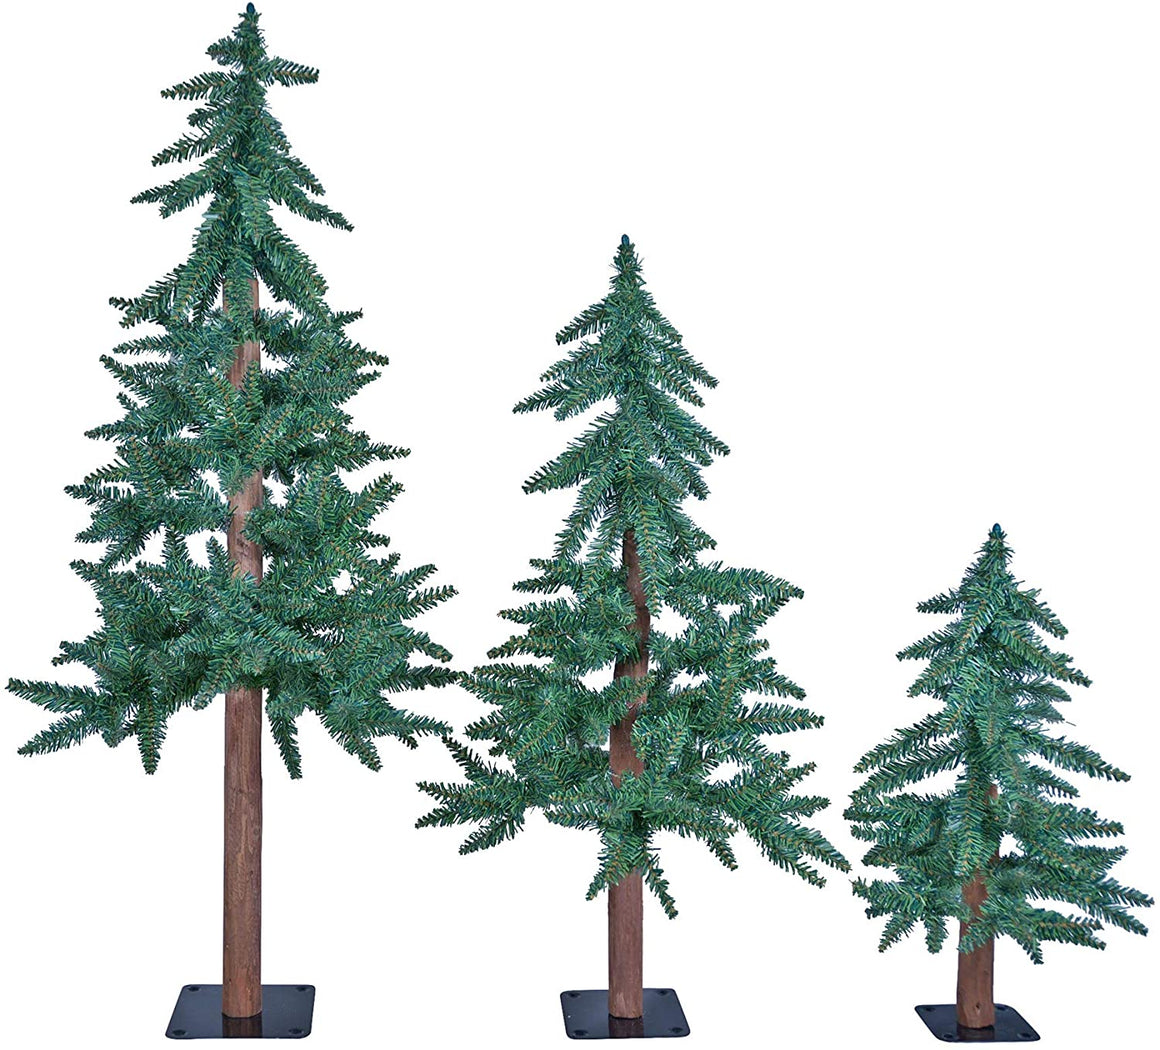 TenWaterloo Set of 3 Christmas Artificial Noble Fir Pine Trees with Wood Trunks- 26 Inches, 37 Inches, 50 Inches High Artificial Alpine Trees